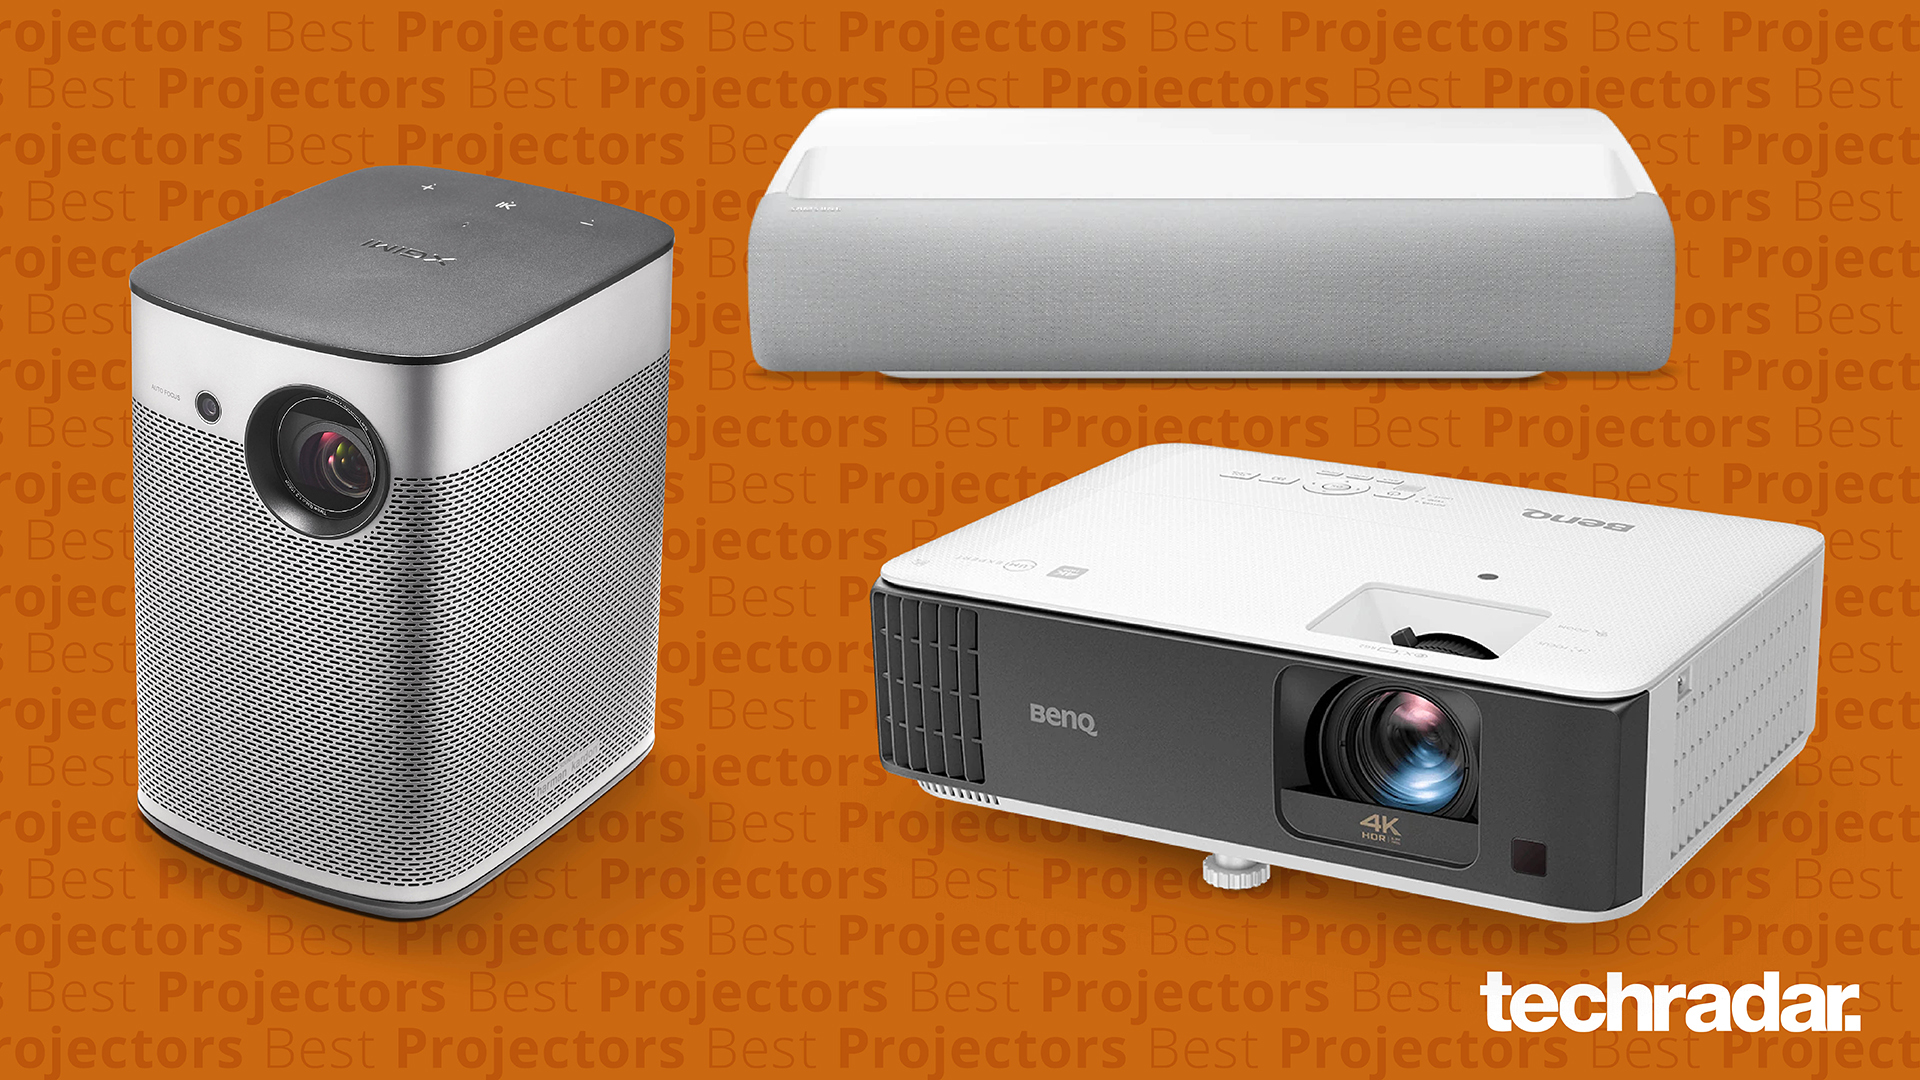 Best 20K projector home theater beamers worth buying   TechRadar